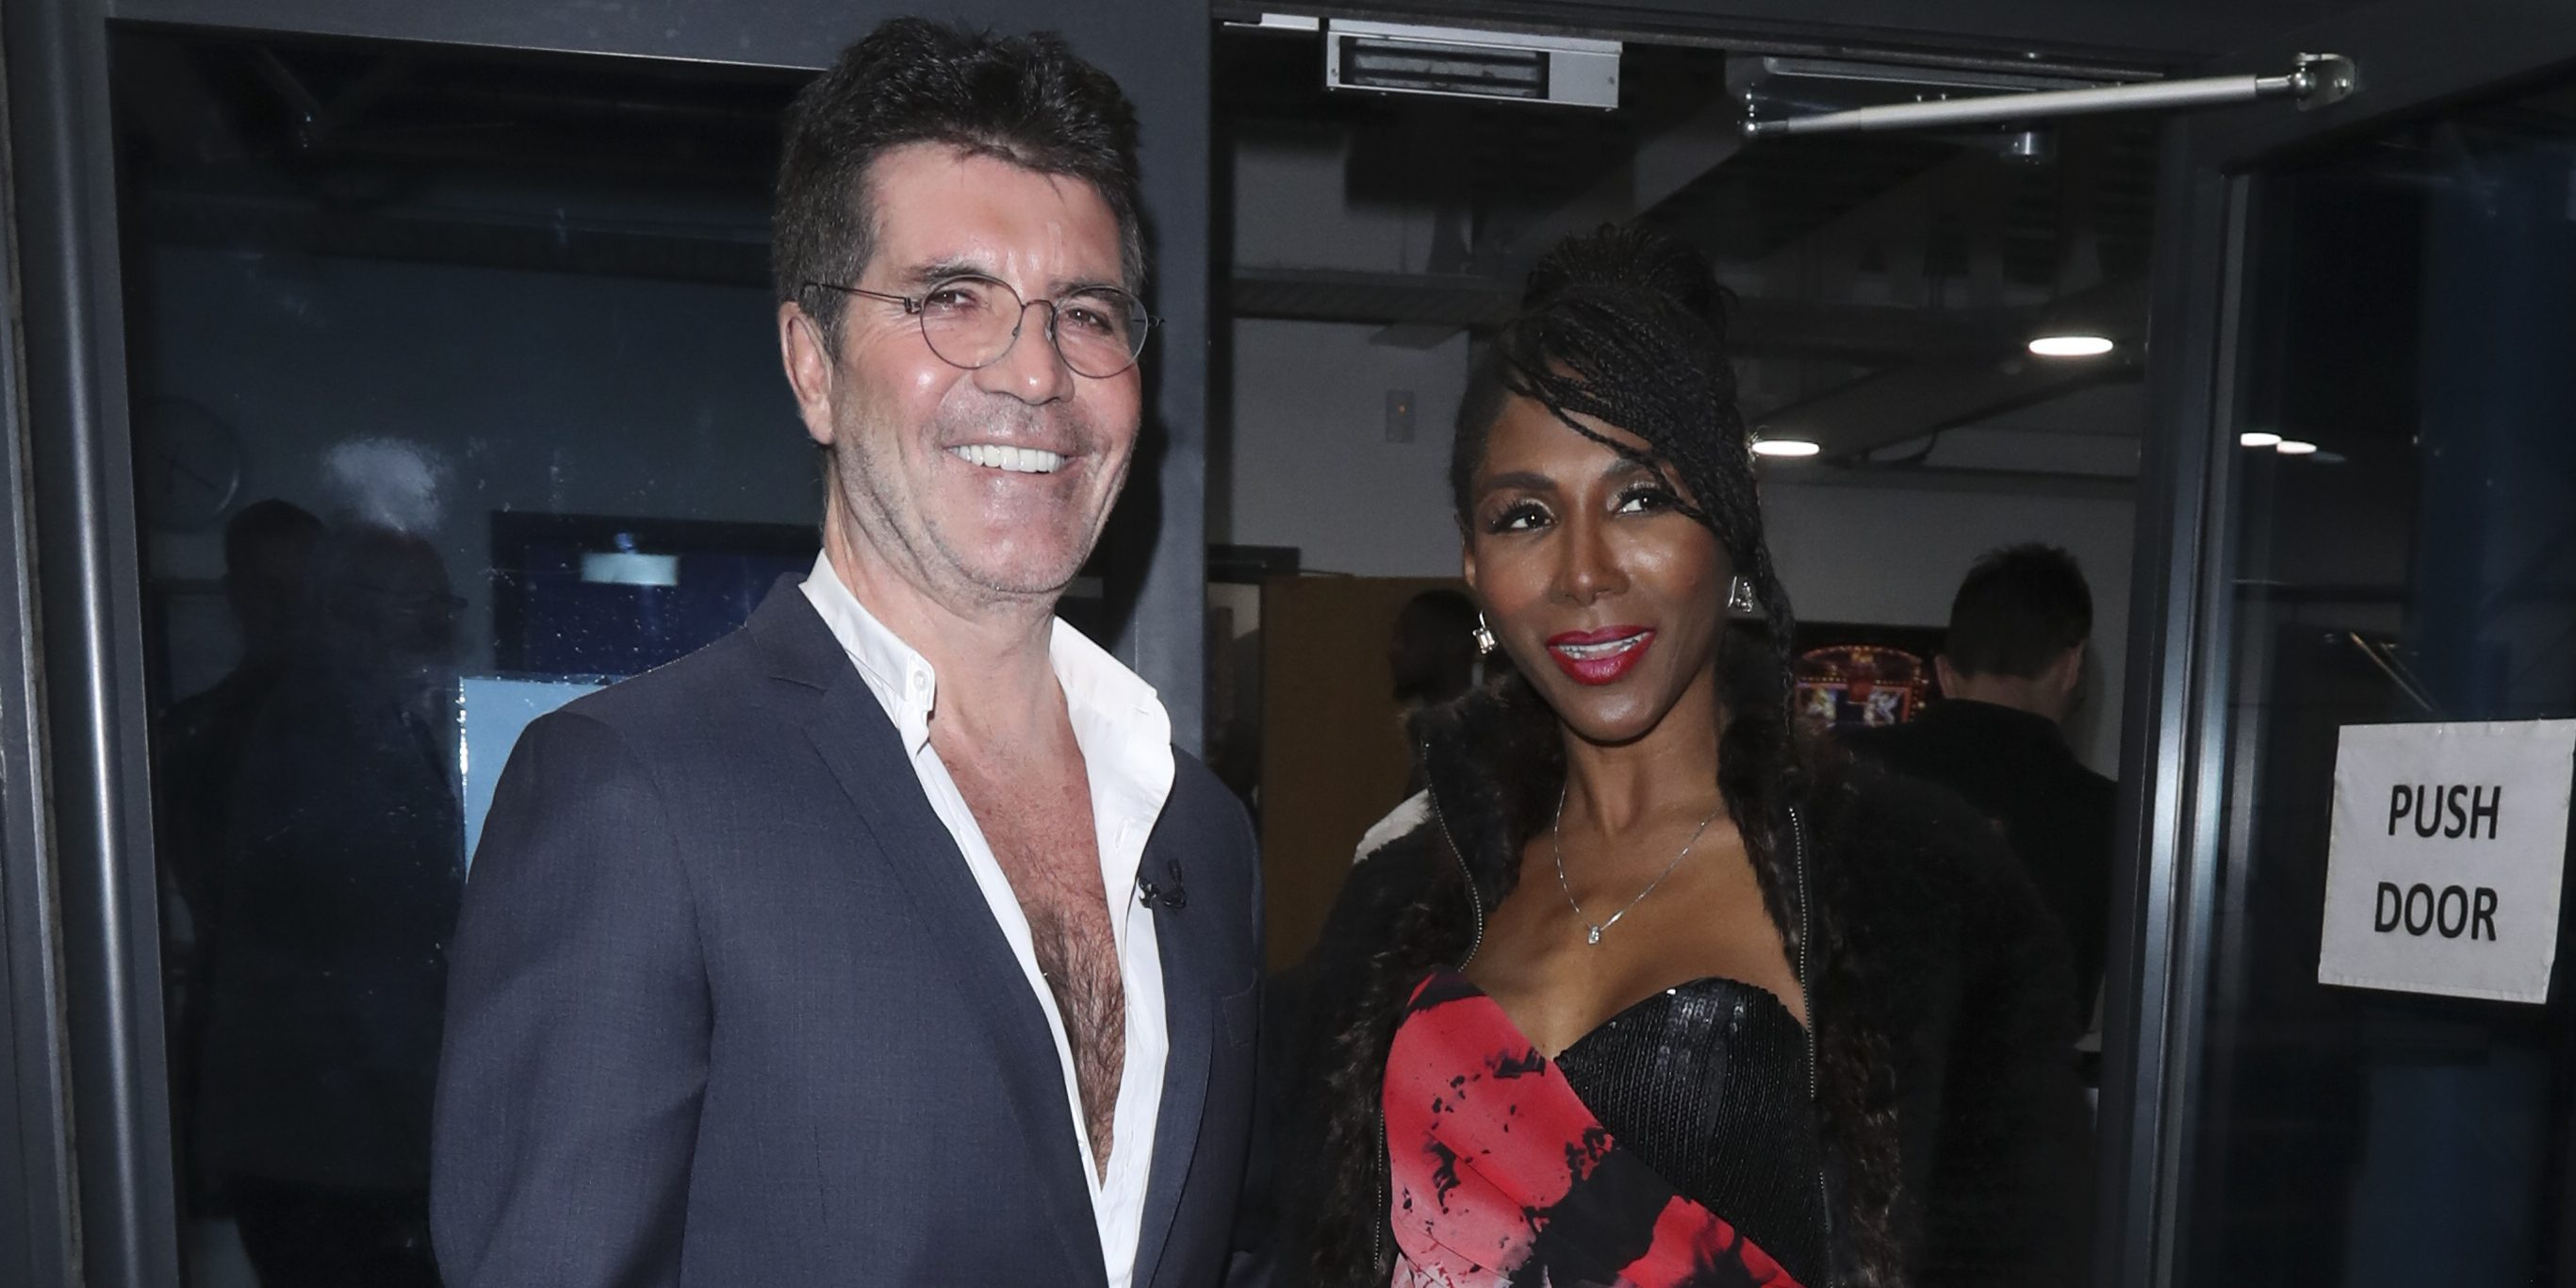 Sinitta claims Simon Cowell 'won't have any more children'